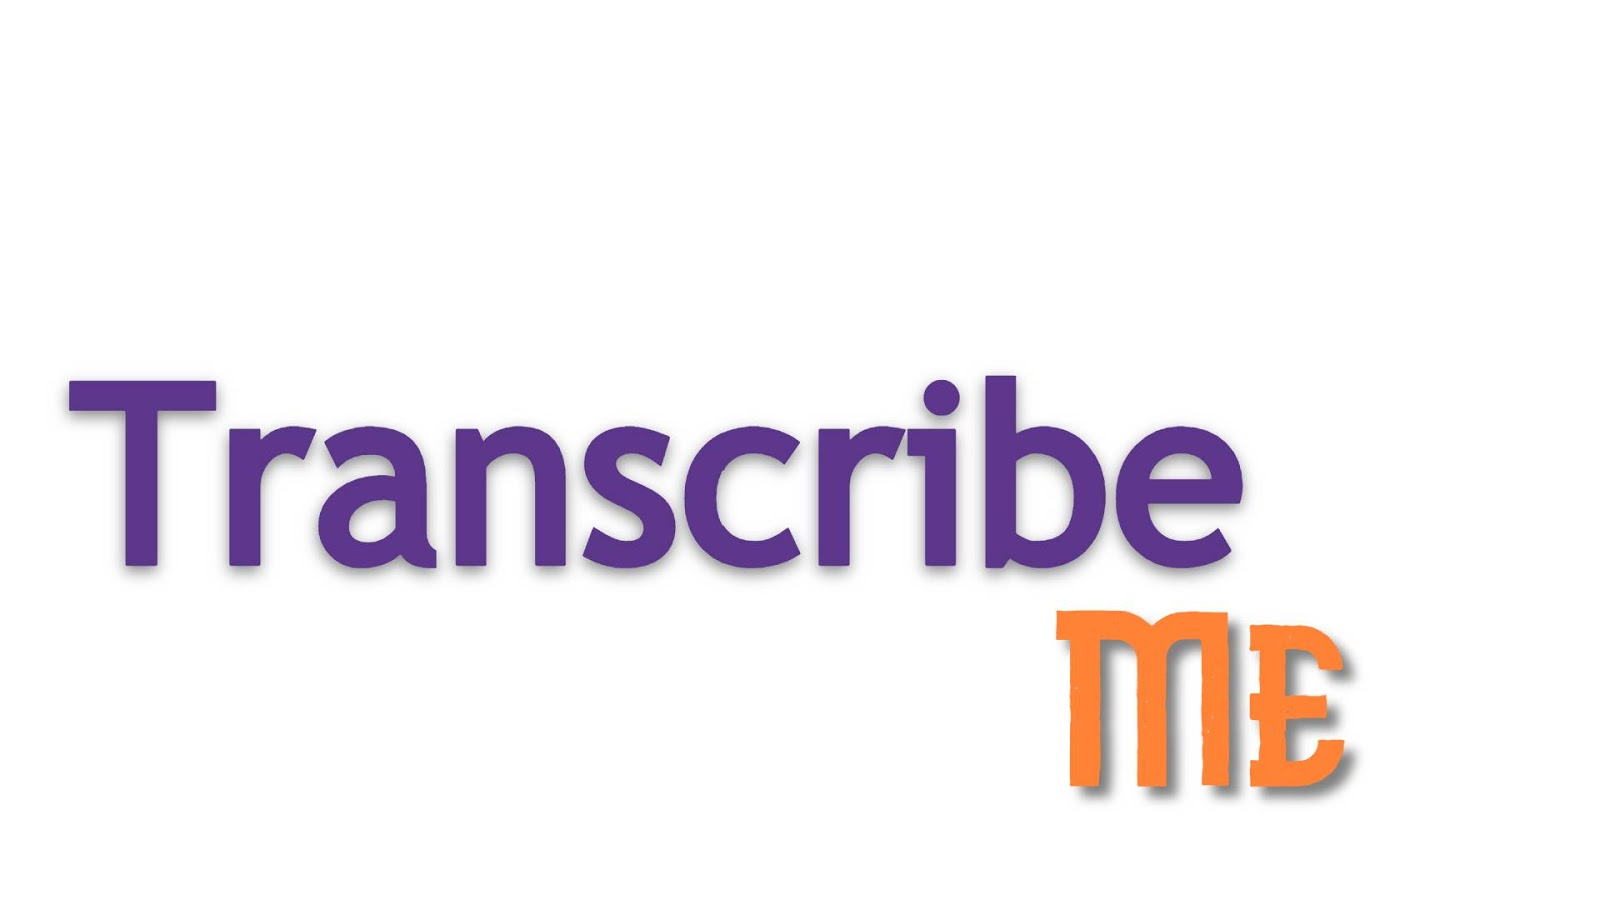 TranscribeMe.com is the best website to get online transcription jobs for beginners malaysia orang . They don't charge any joining fees. And TranscribeMe.com pays between $18 and $25 per audio hour.